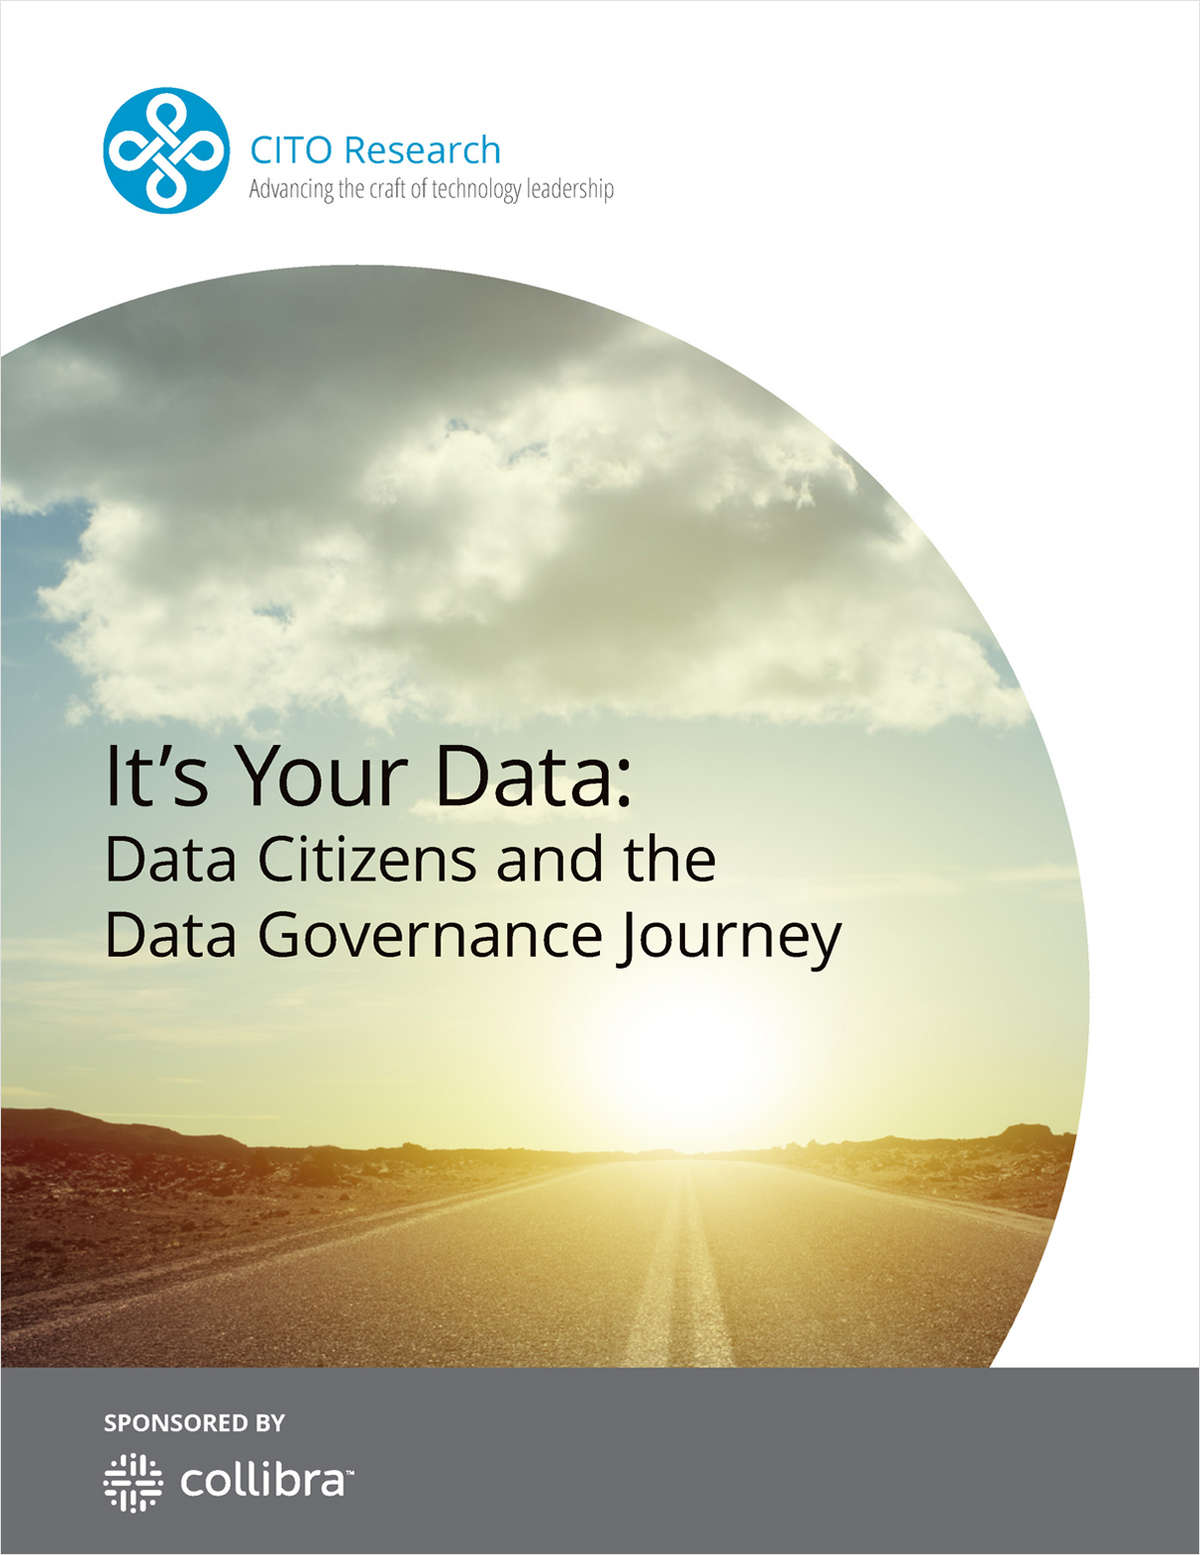 It's Your Data: Data Citizens and the Data Governance Journey